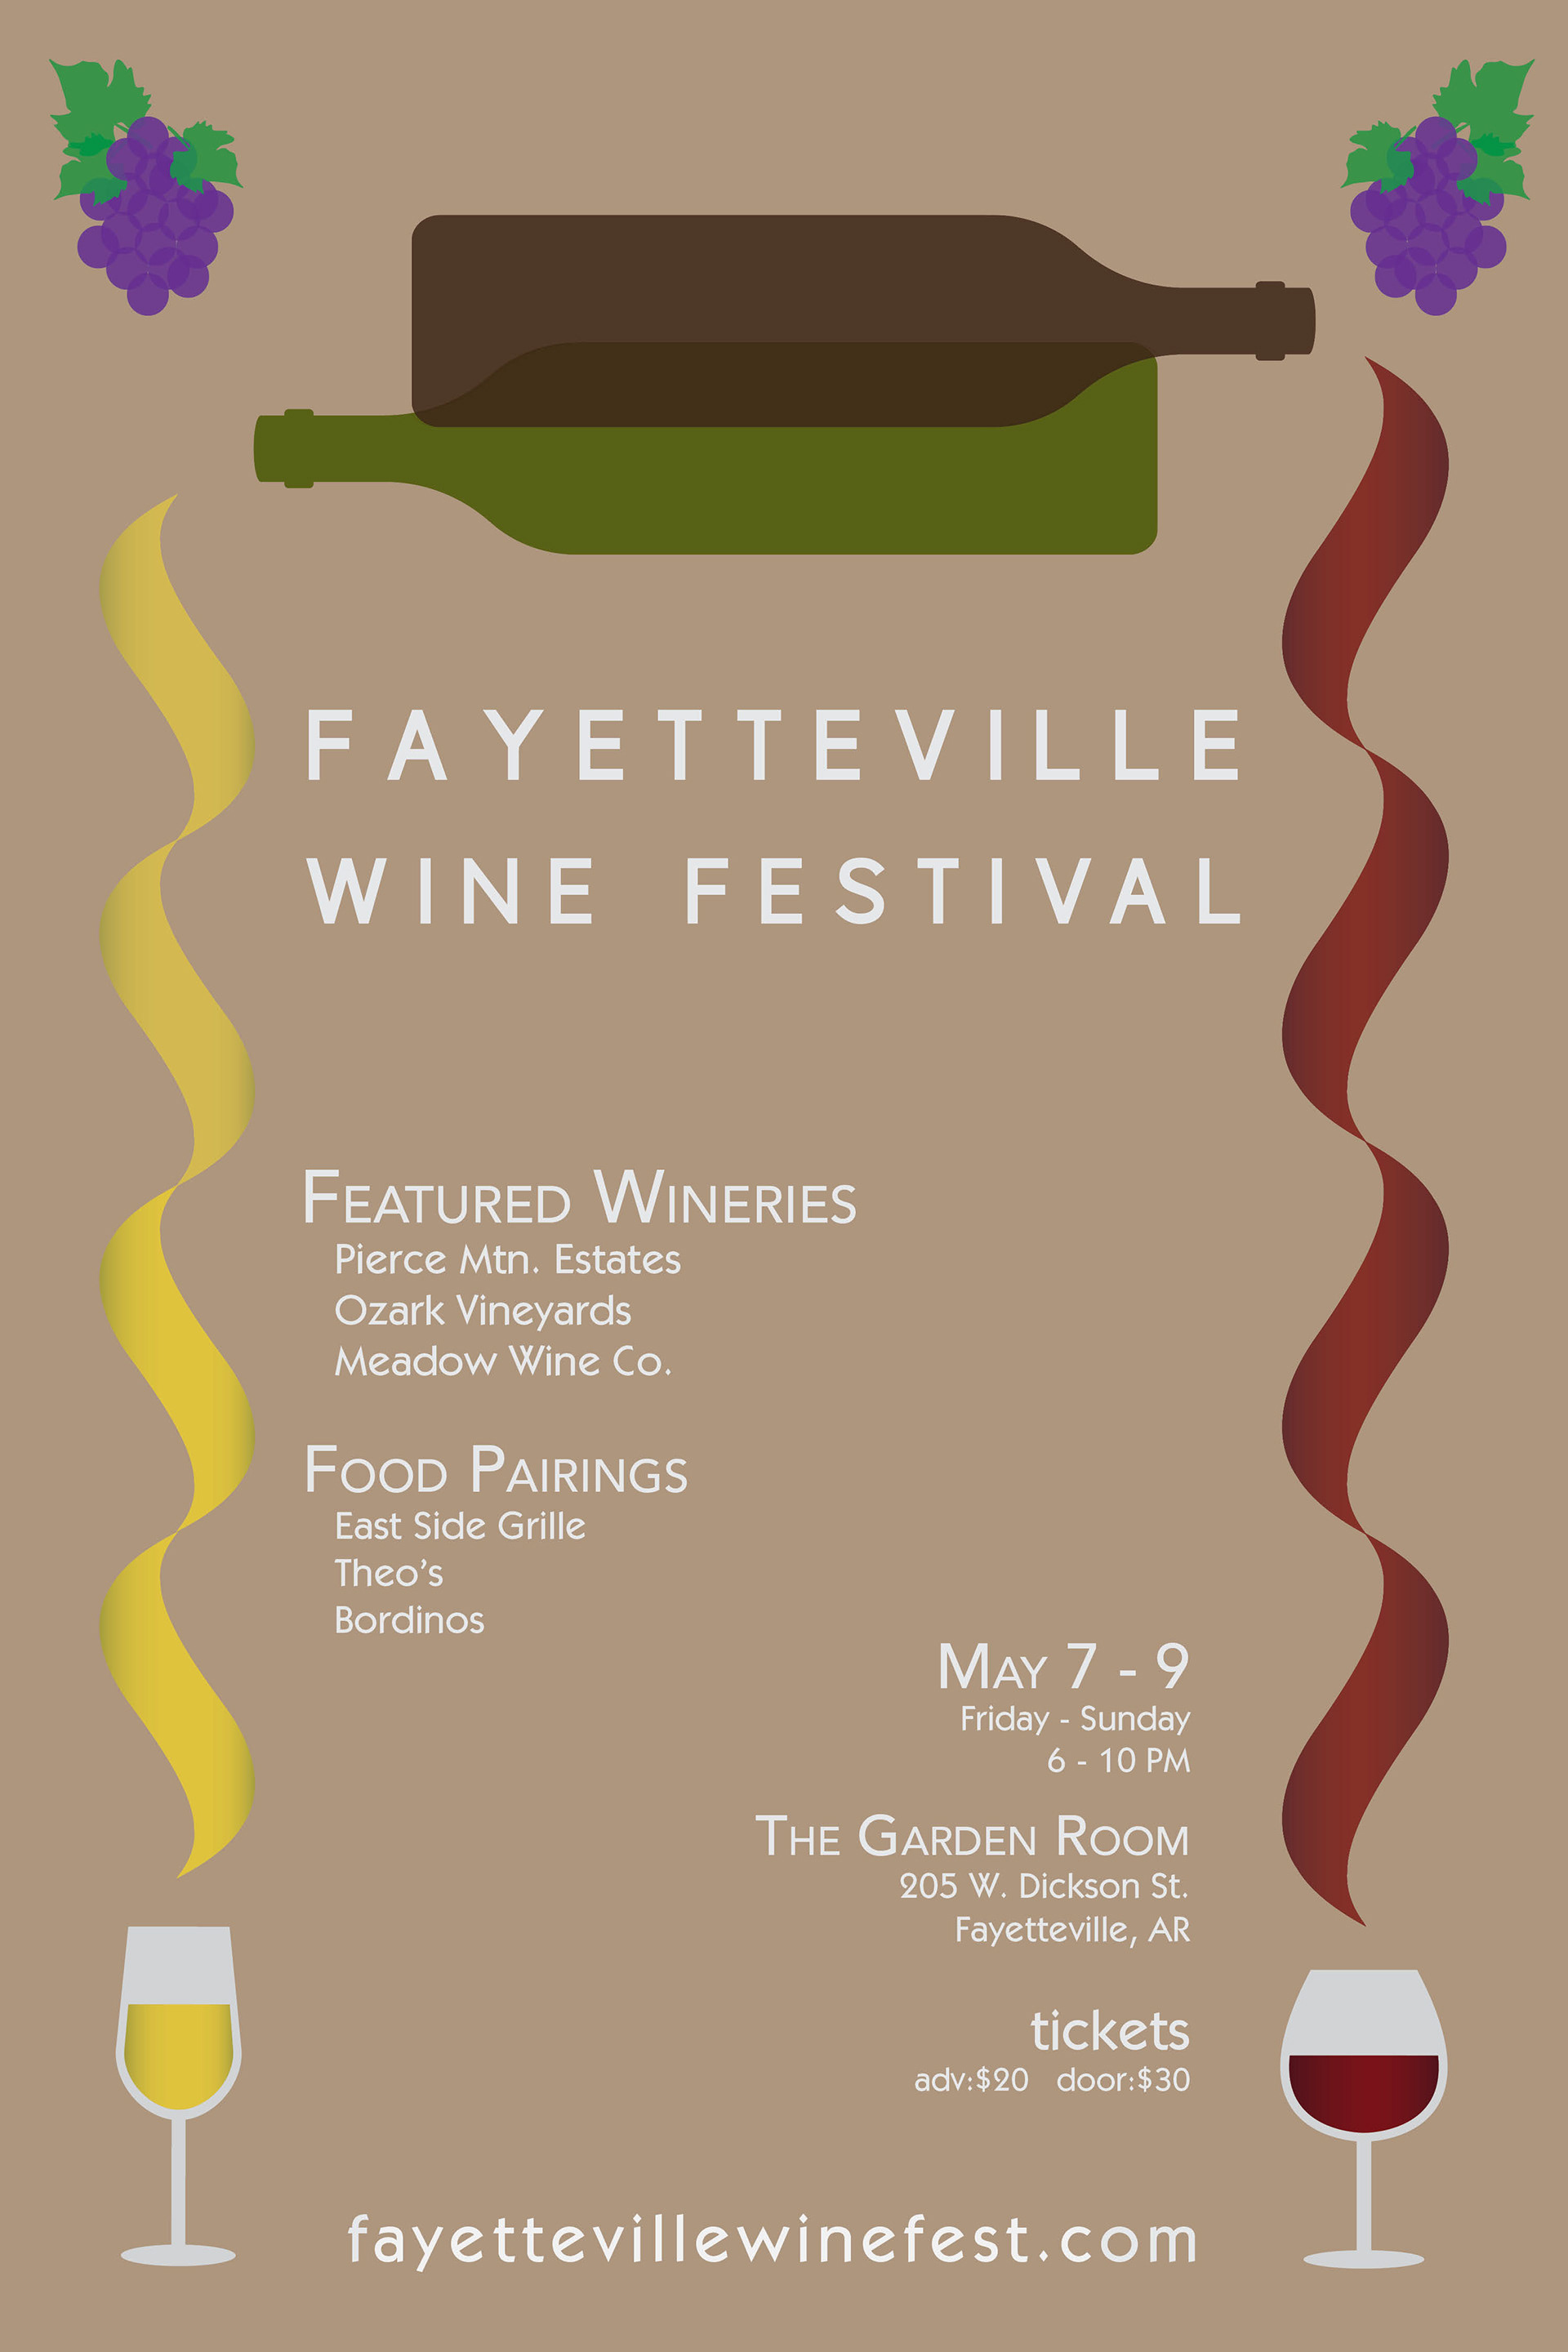 For This Project I Was Asked To Create A Series Of Posters Festival Event Our Choosing Chose Wine Inspired By Some AM